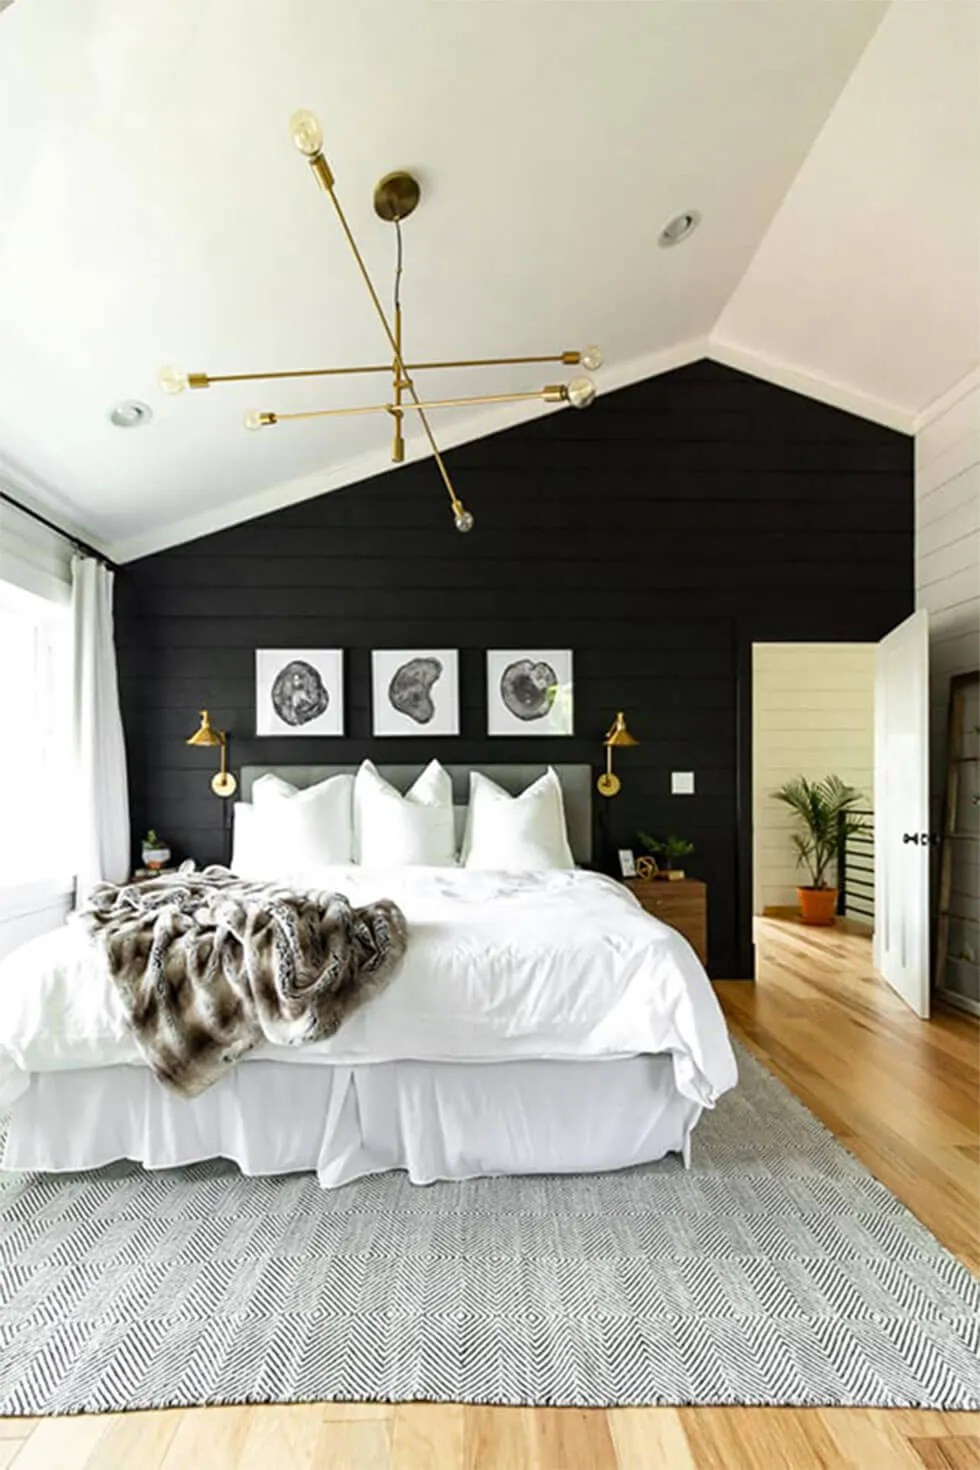 6 Powerful And Stylish Black And White Bedroom Ideas Furniture Choice